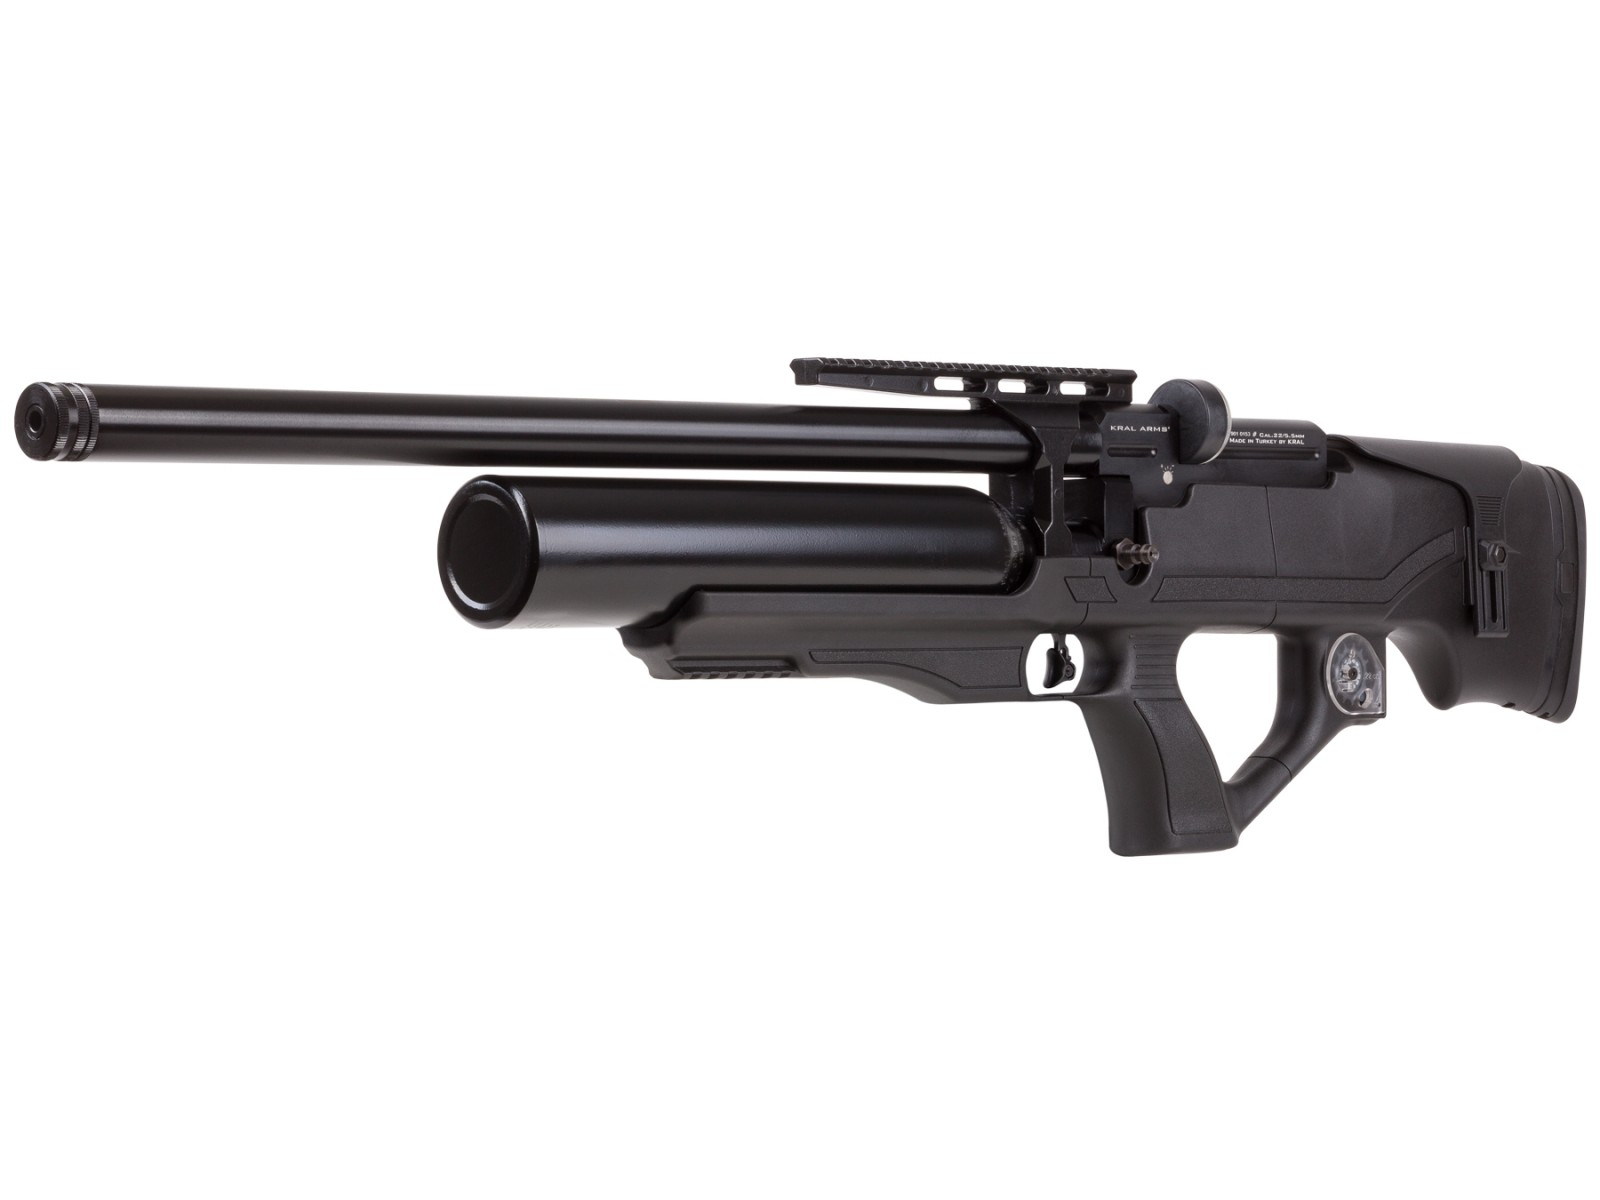 Cheap Kral Puncher Knight S PCP Air Rifle, Synthetic Stock 0.22